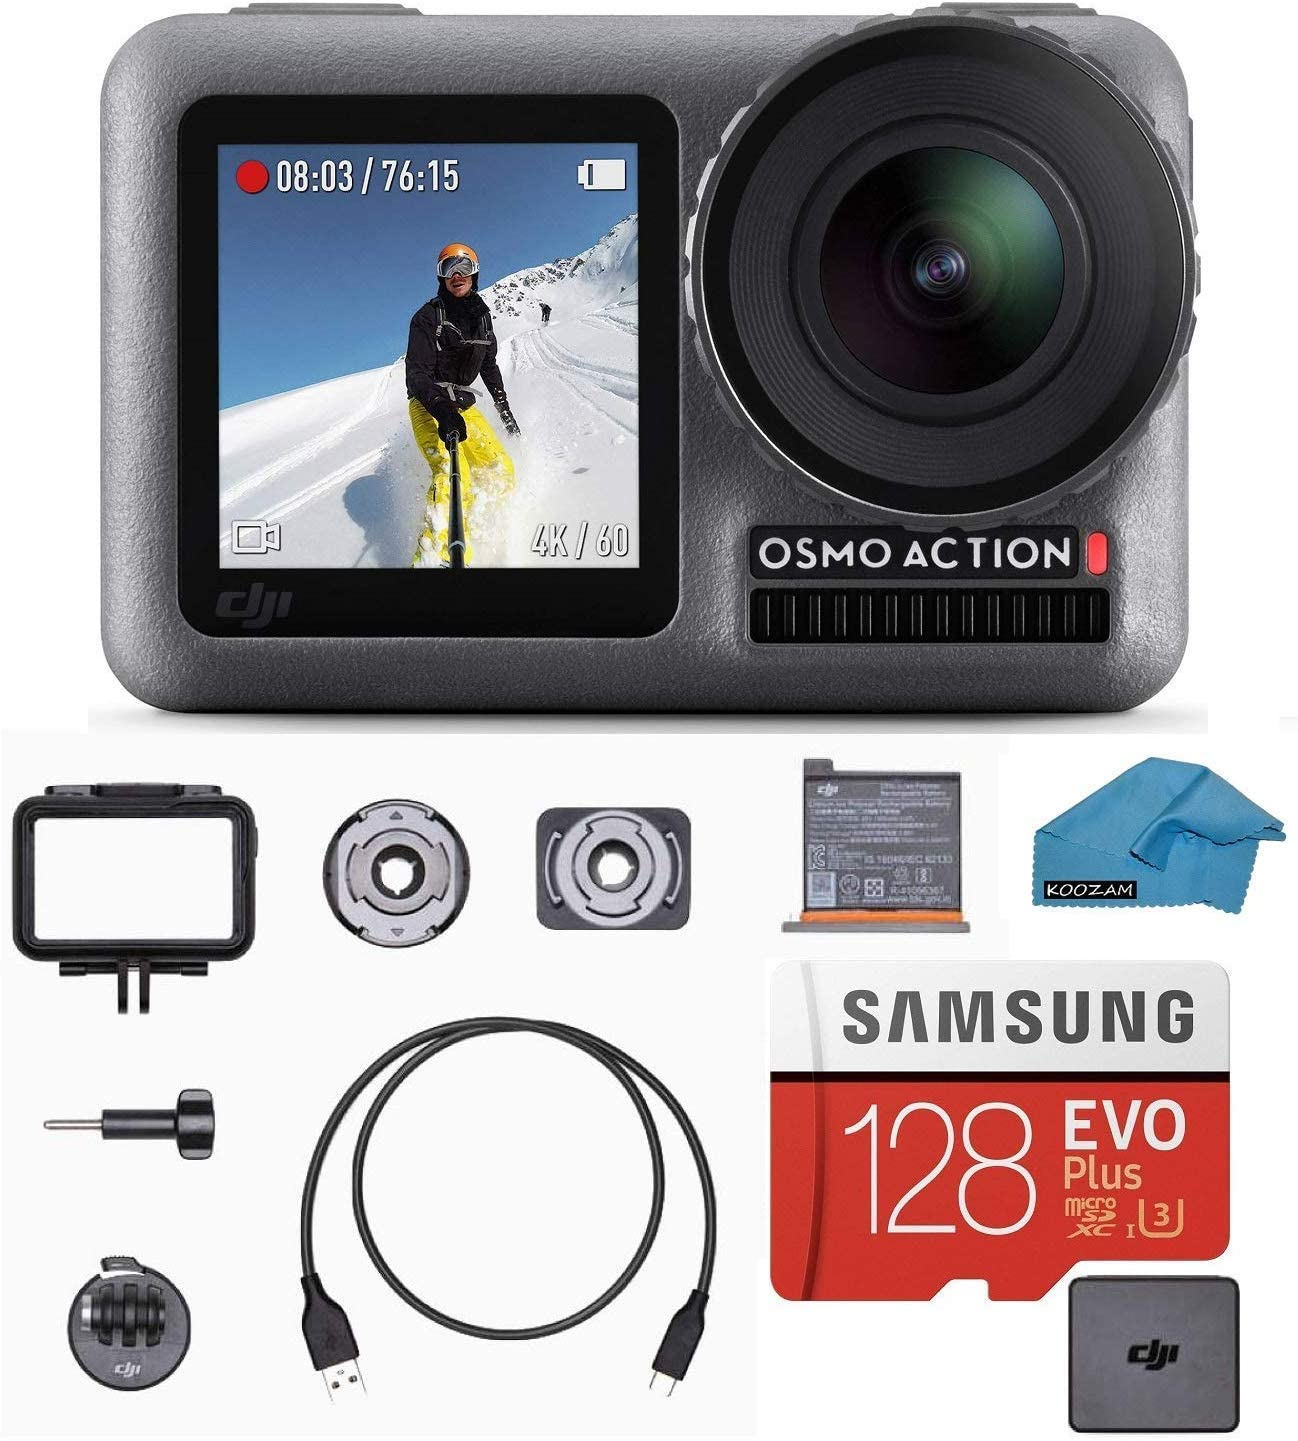 DJI OSMO Action Cam Digital Camera Bundle with 2 Displays 36FT 11M Waterproof 4K HDR-Video 12MP 145 Angle, 128gb Micro SD Card, Card Reader, Must Have Accessories